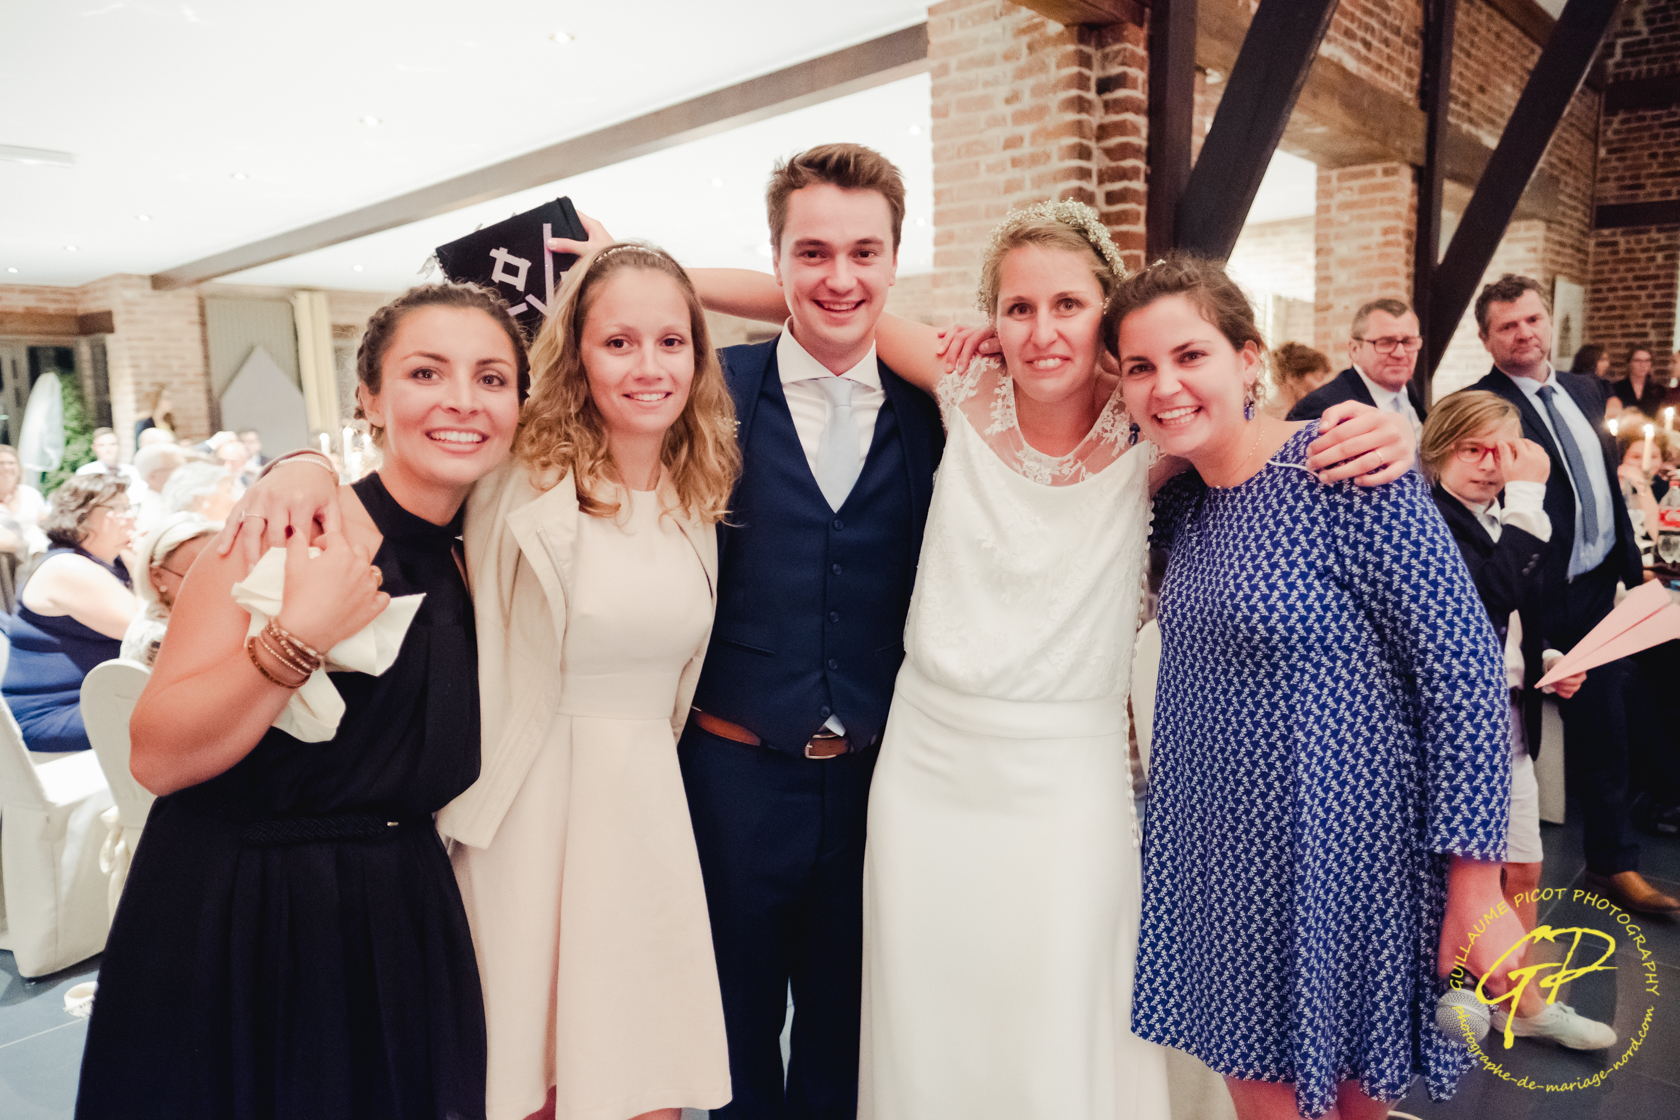 mariage-claire-fontaine-wicres-113-sur-151